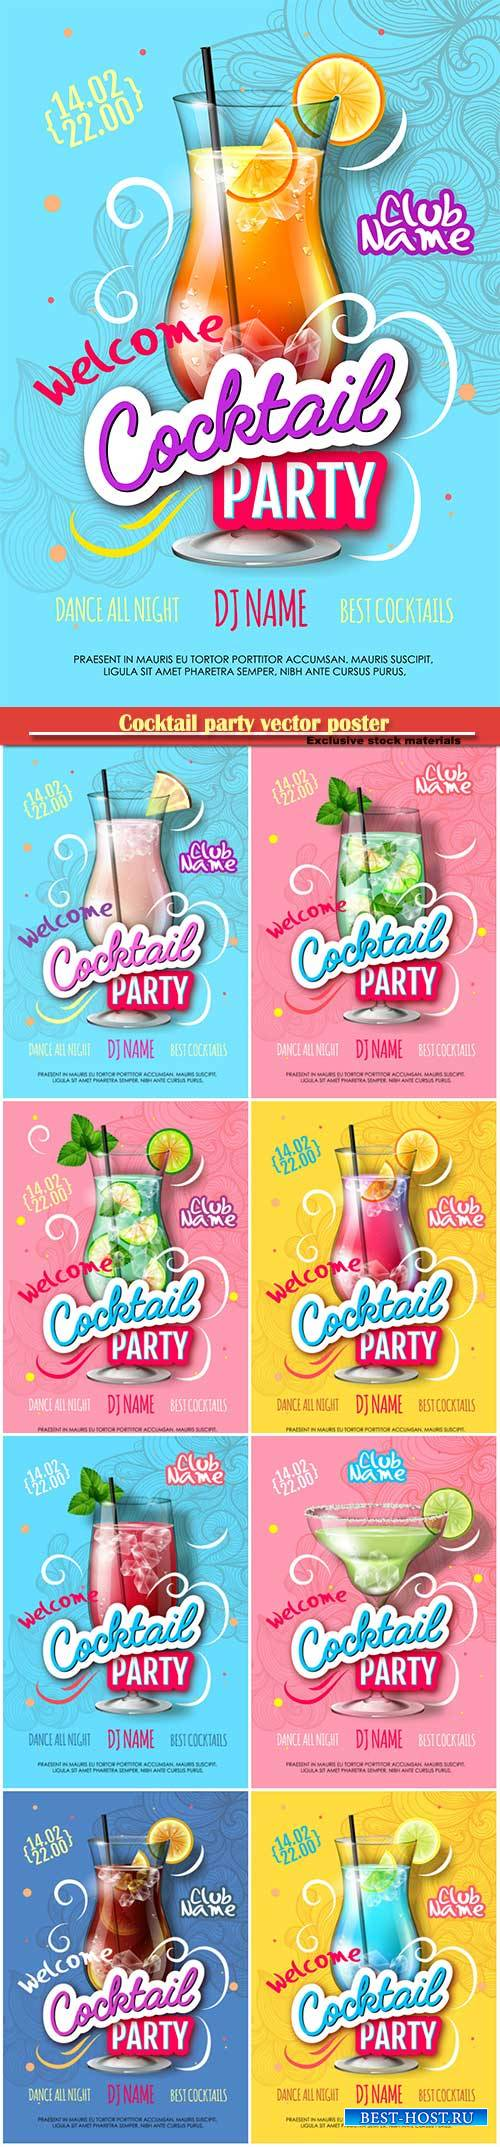 Cocktail party vector poster in modern style, Valentine's Day